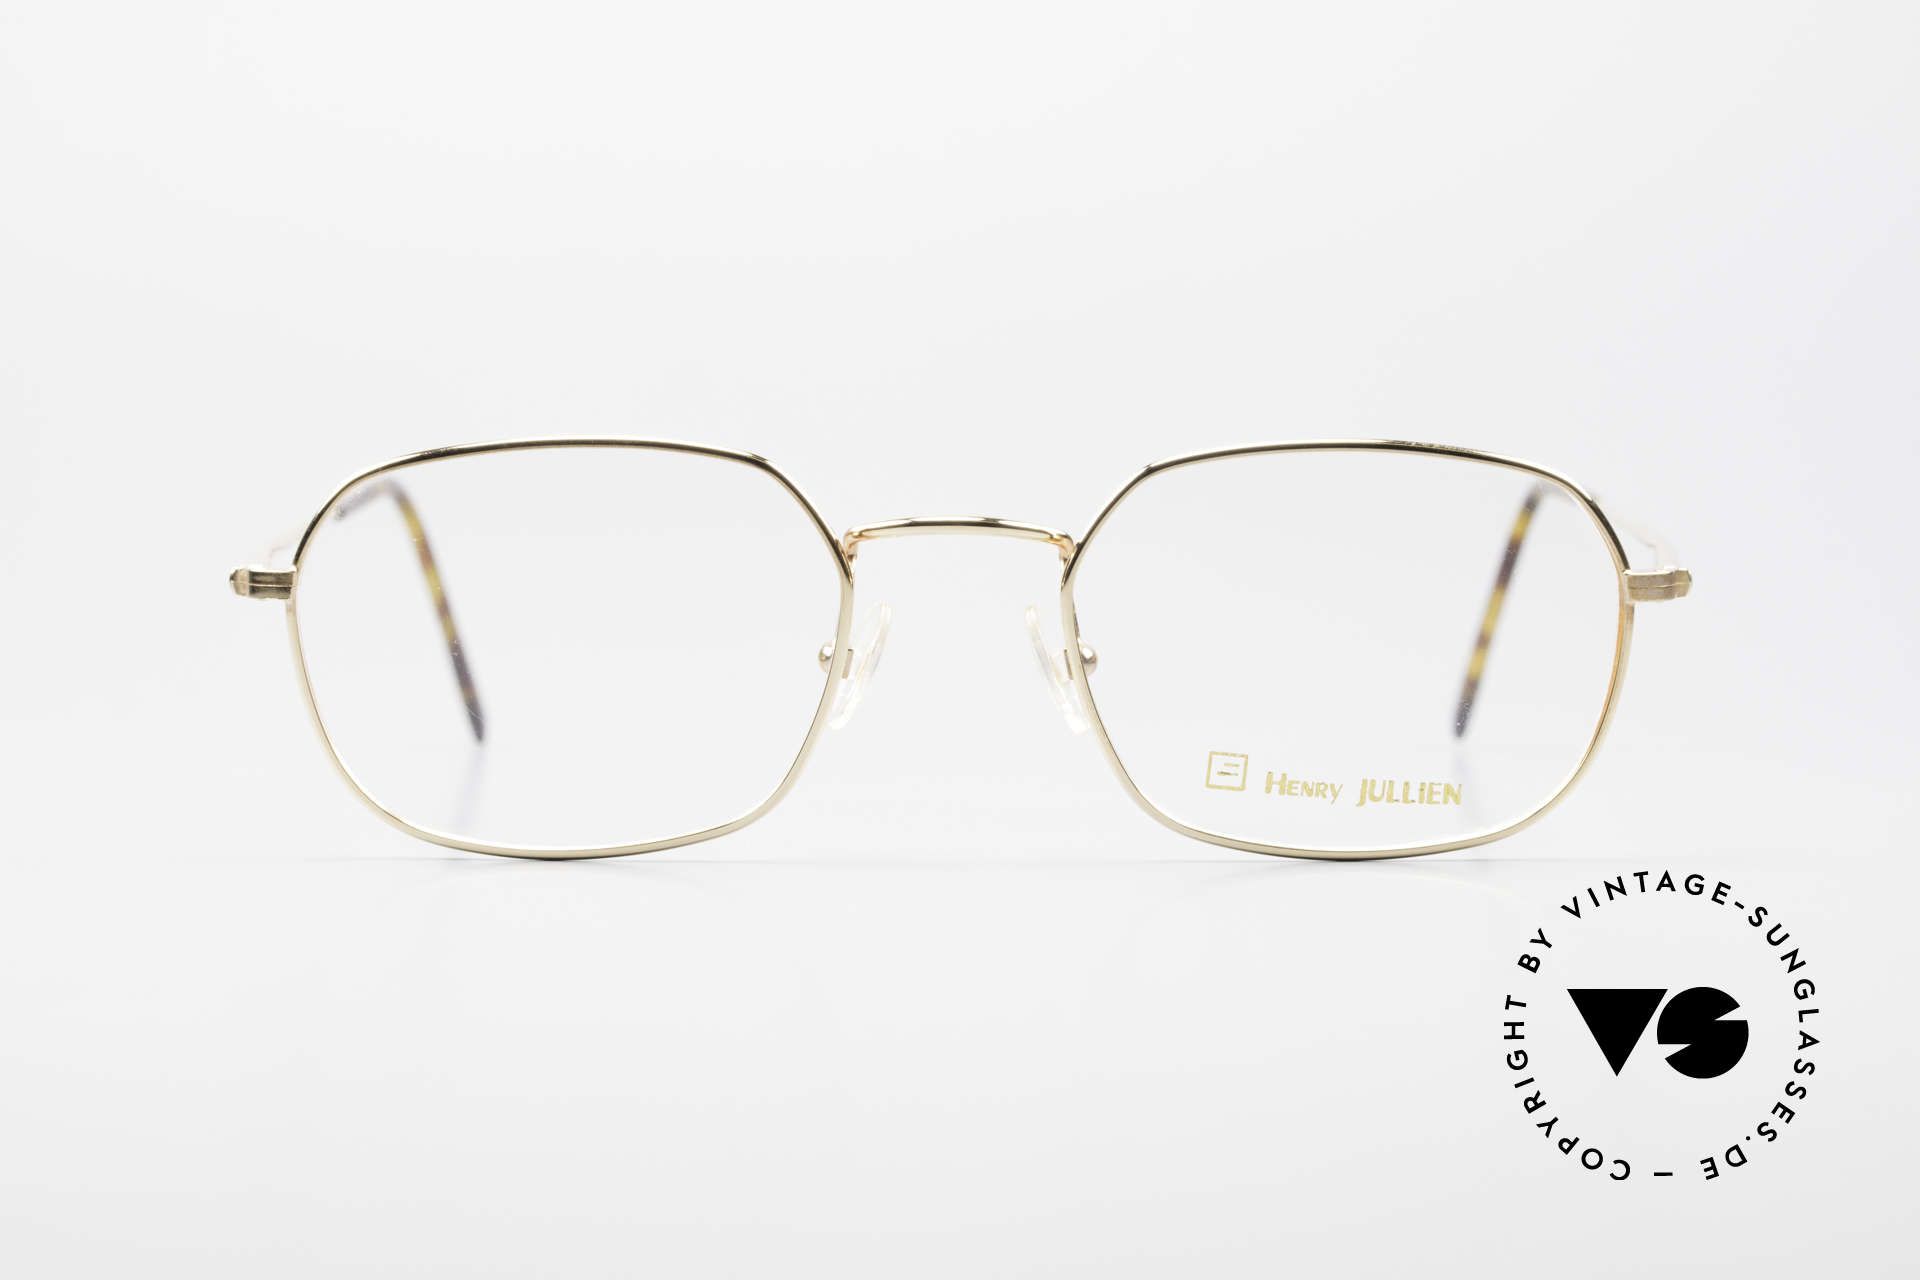 Henry Jullien Reale 05 Gold Plated Vintage Frame, Jullien is well-known for high-end gold processing, Made for Men and Women